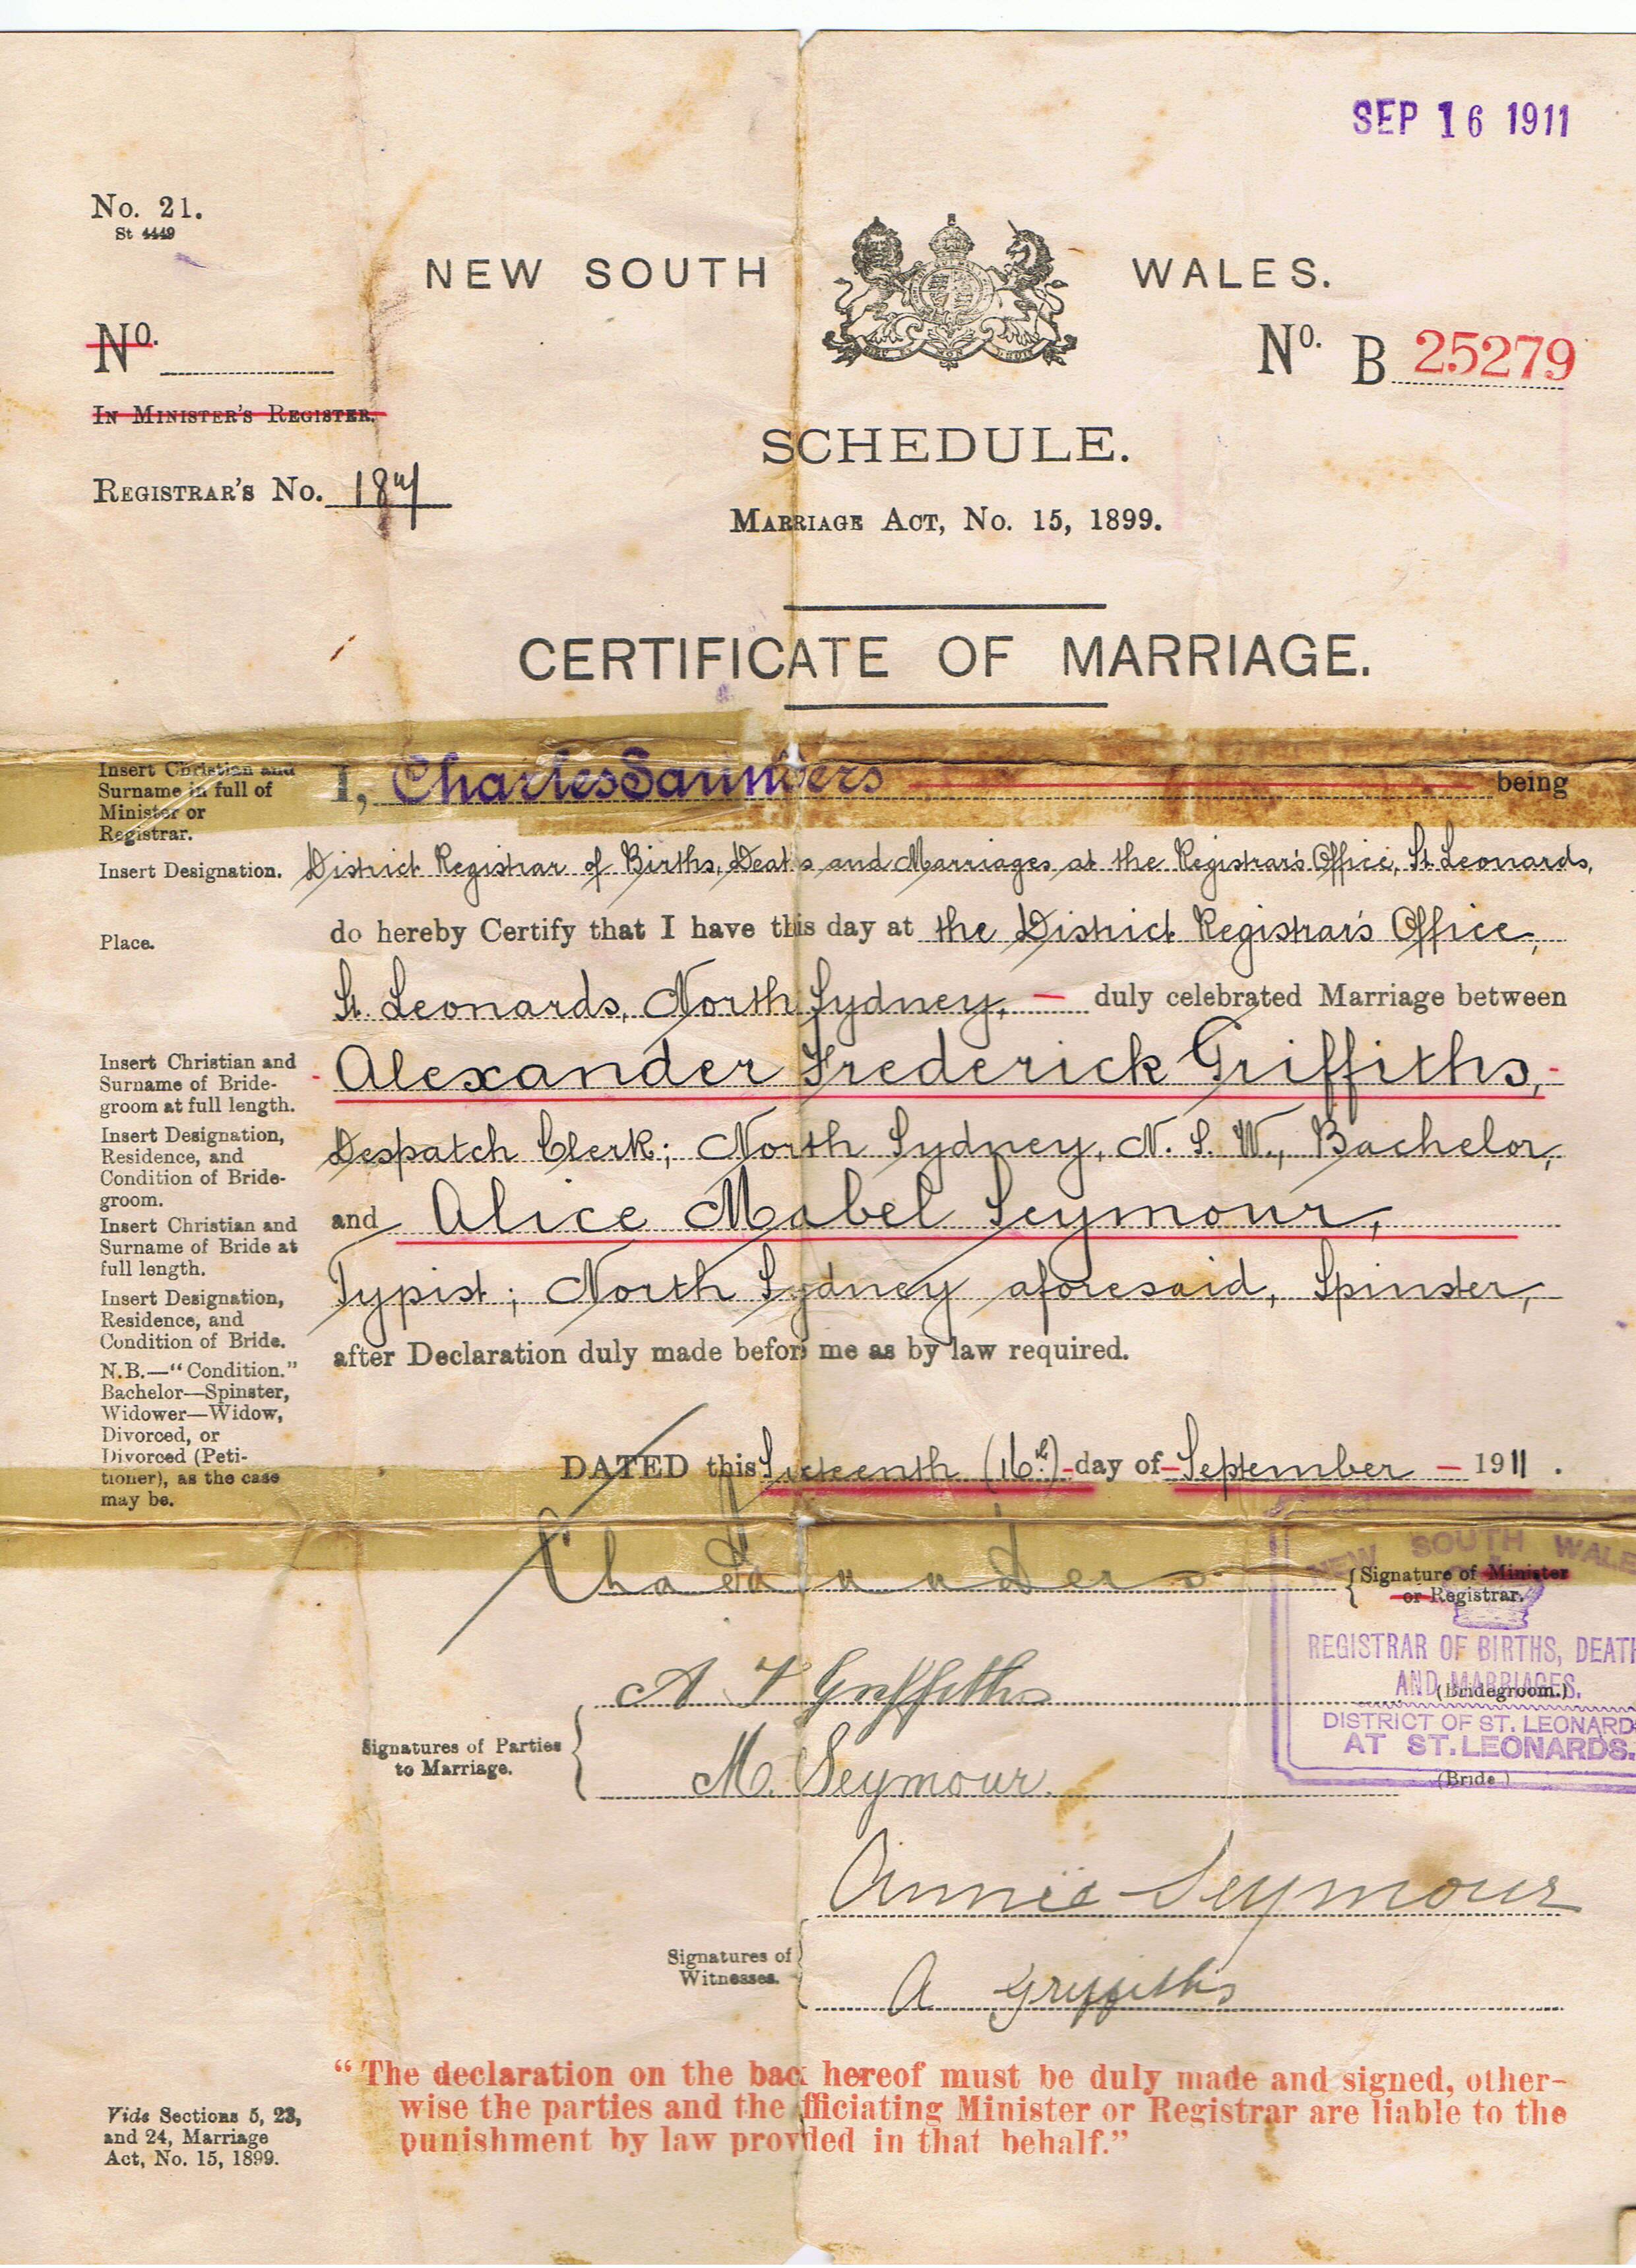 Marriage Certificate of Alexander Frederick Griffiths and Alice Mabel Seymour